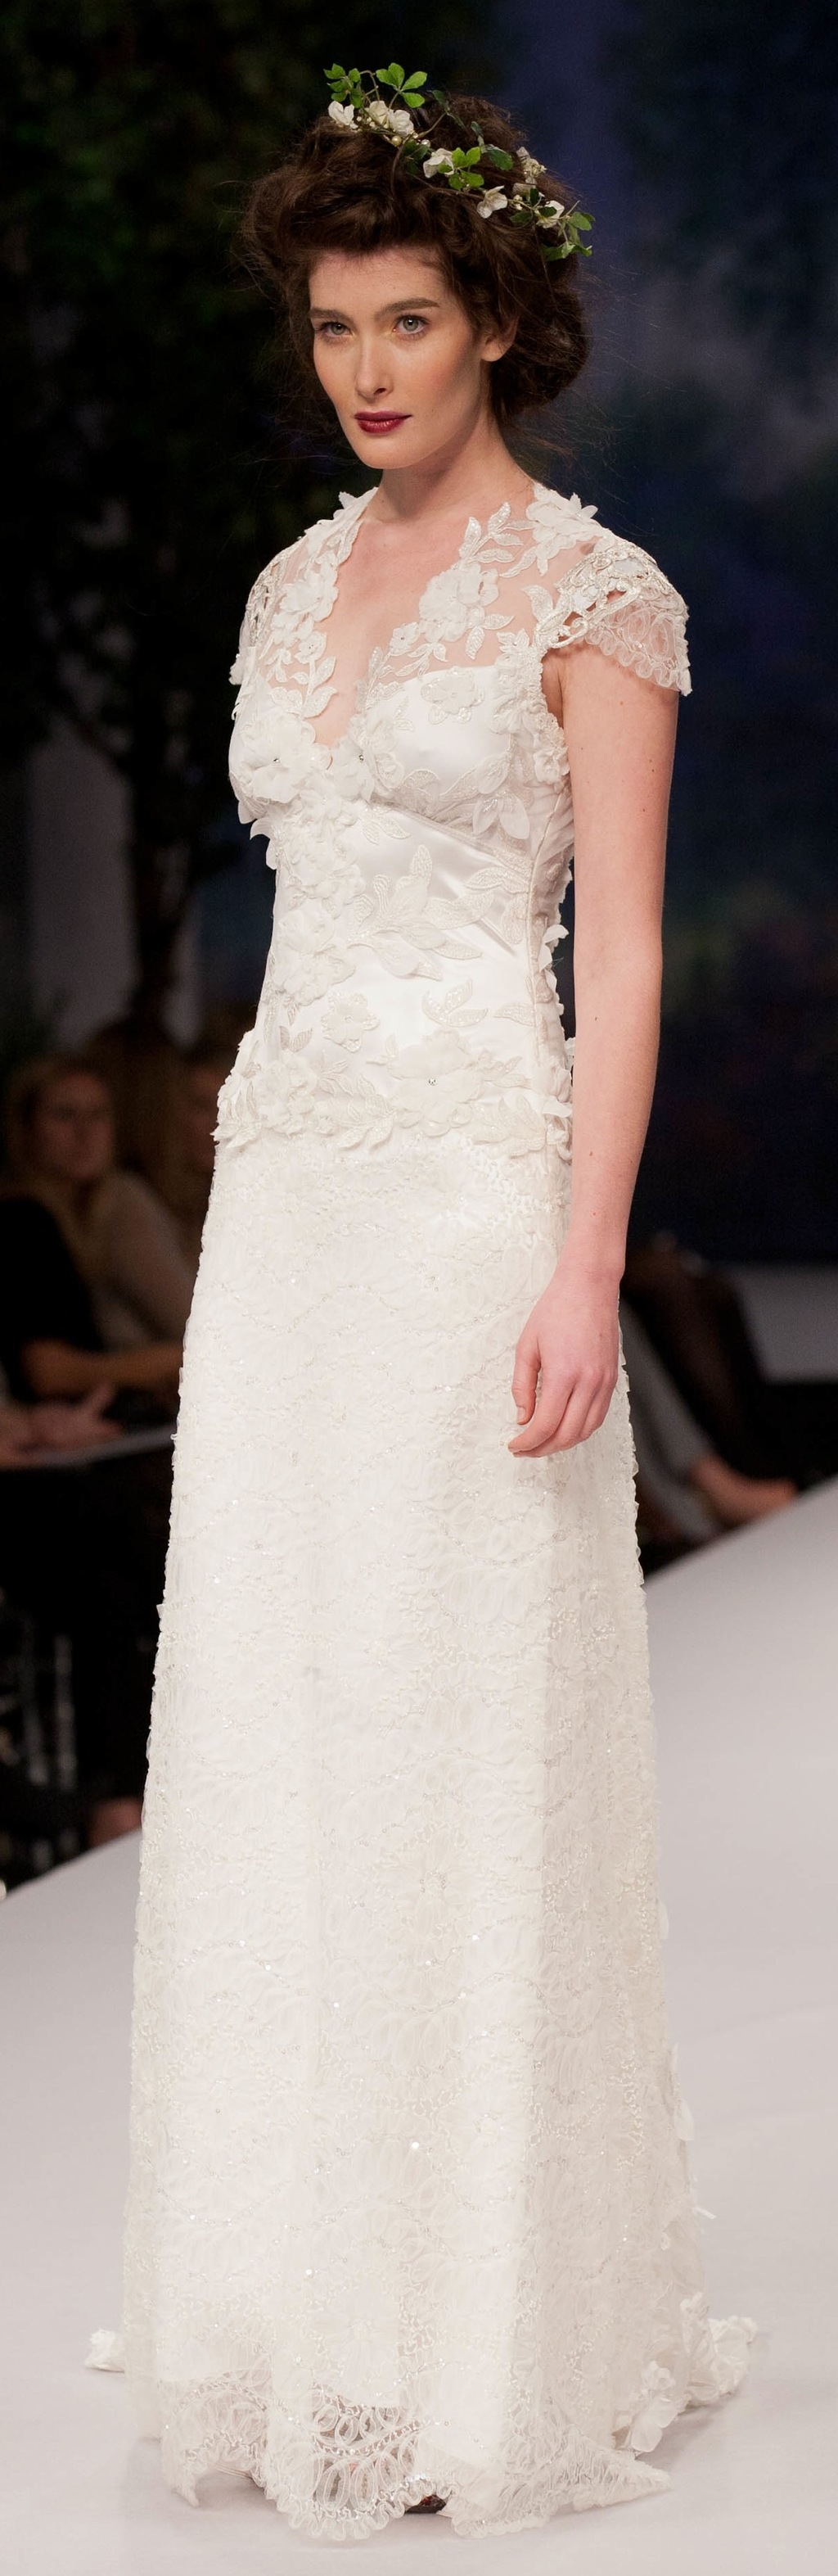 Spring_2012_wedding_dress_claire_pettibone_belle.full